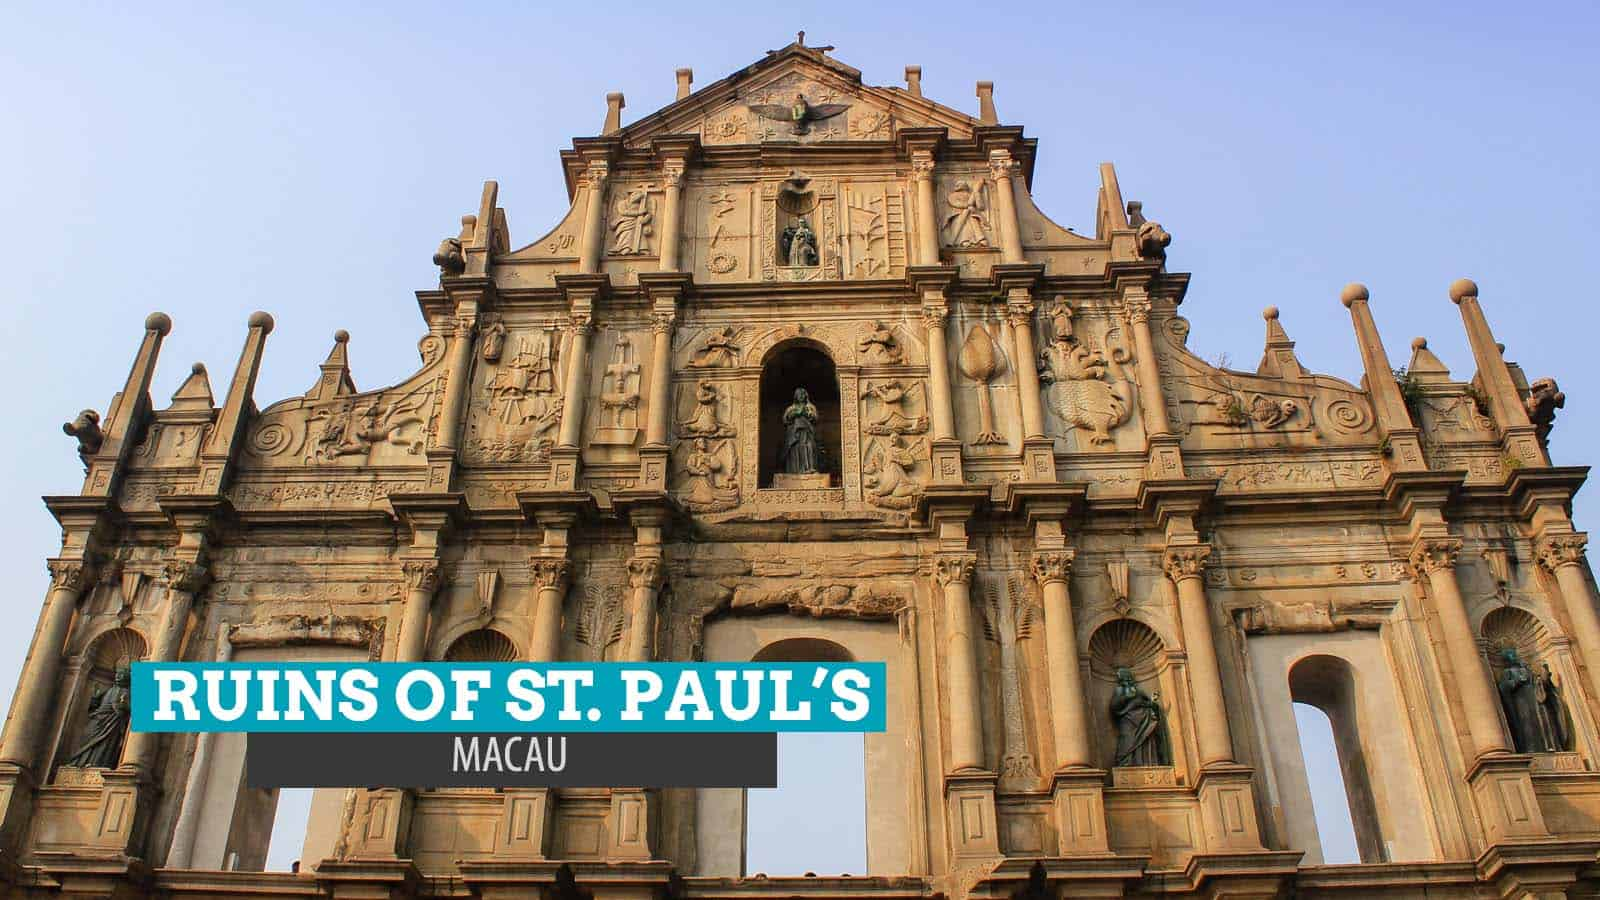 THE RUINS OF ST. PAUL'S, MACAU